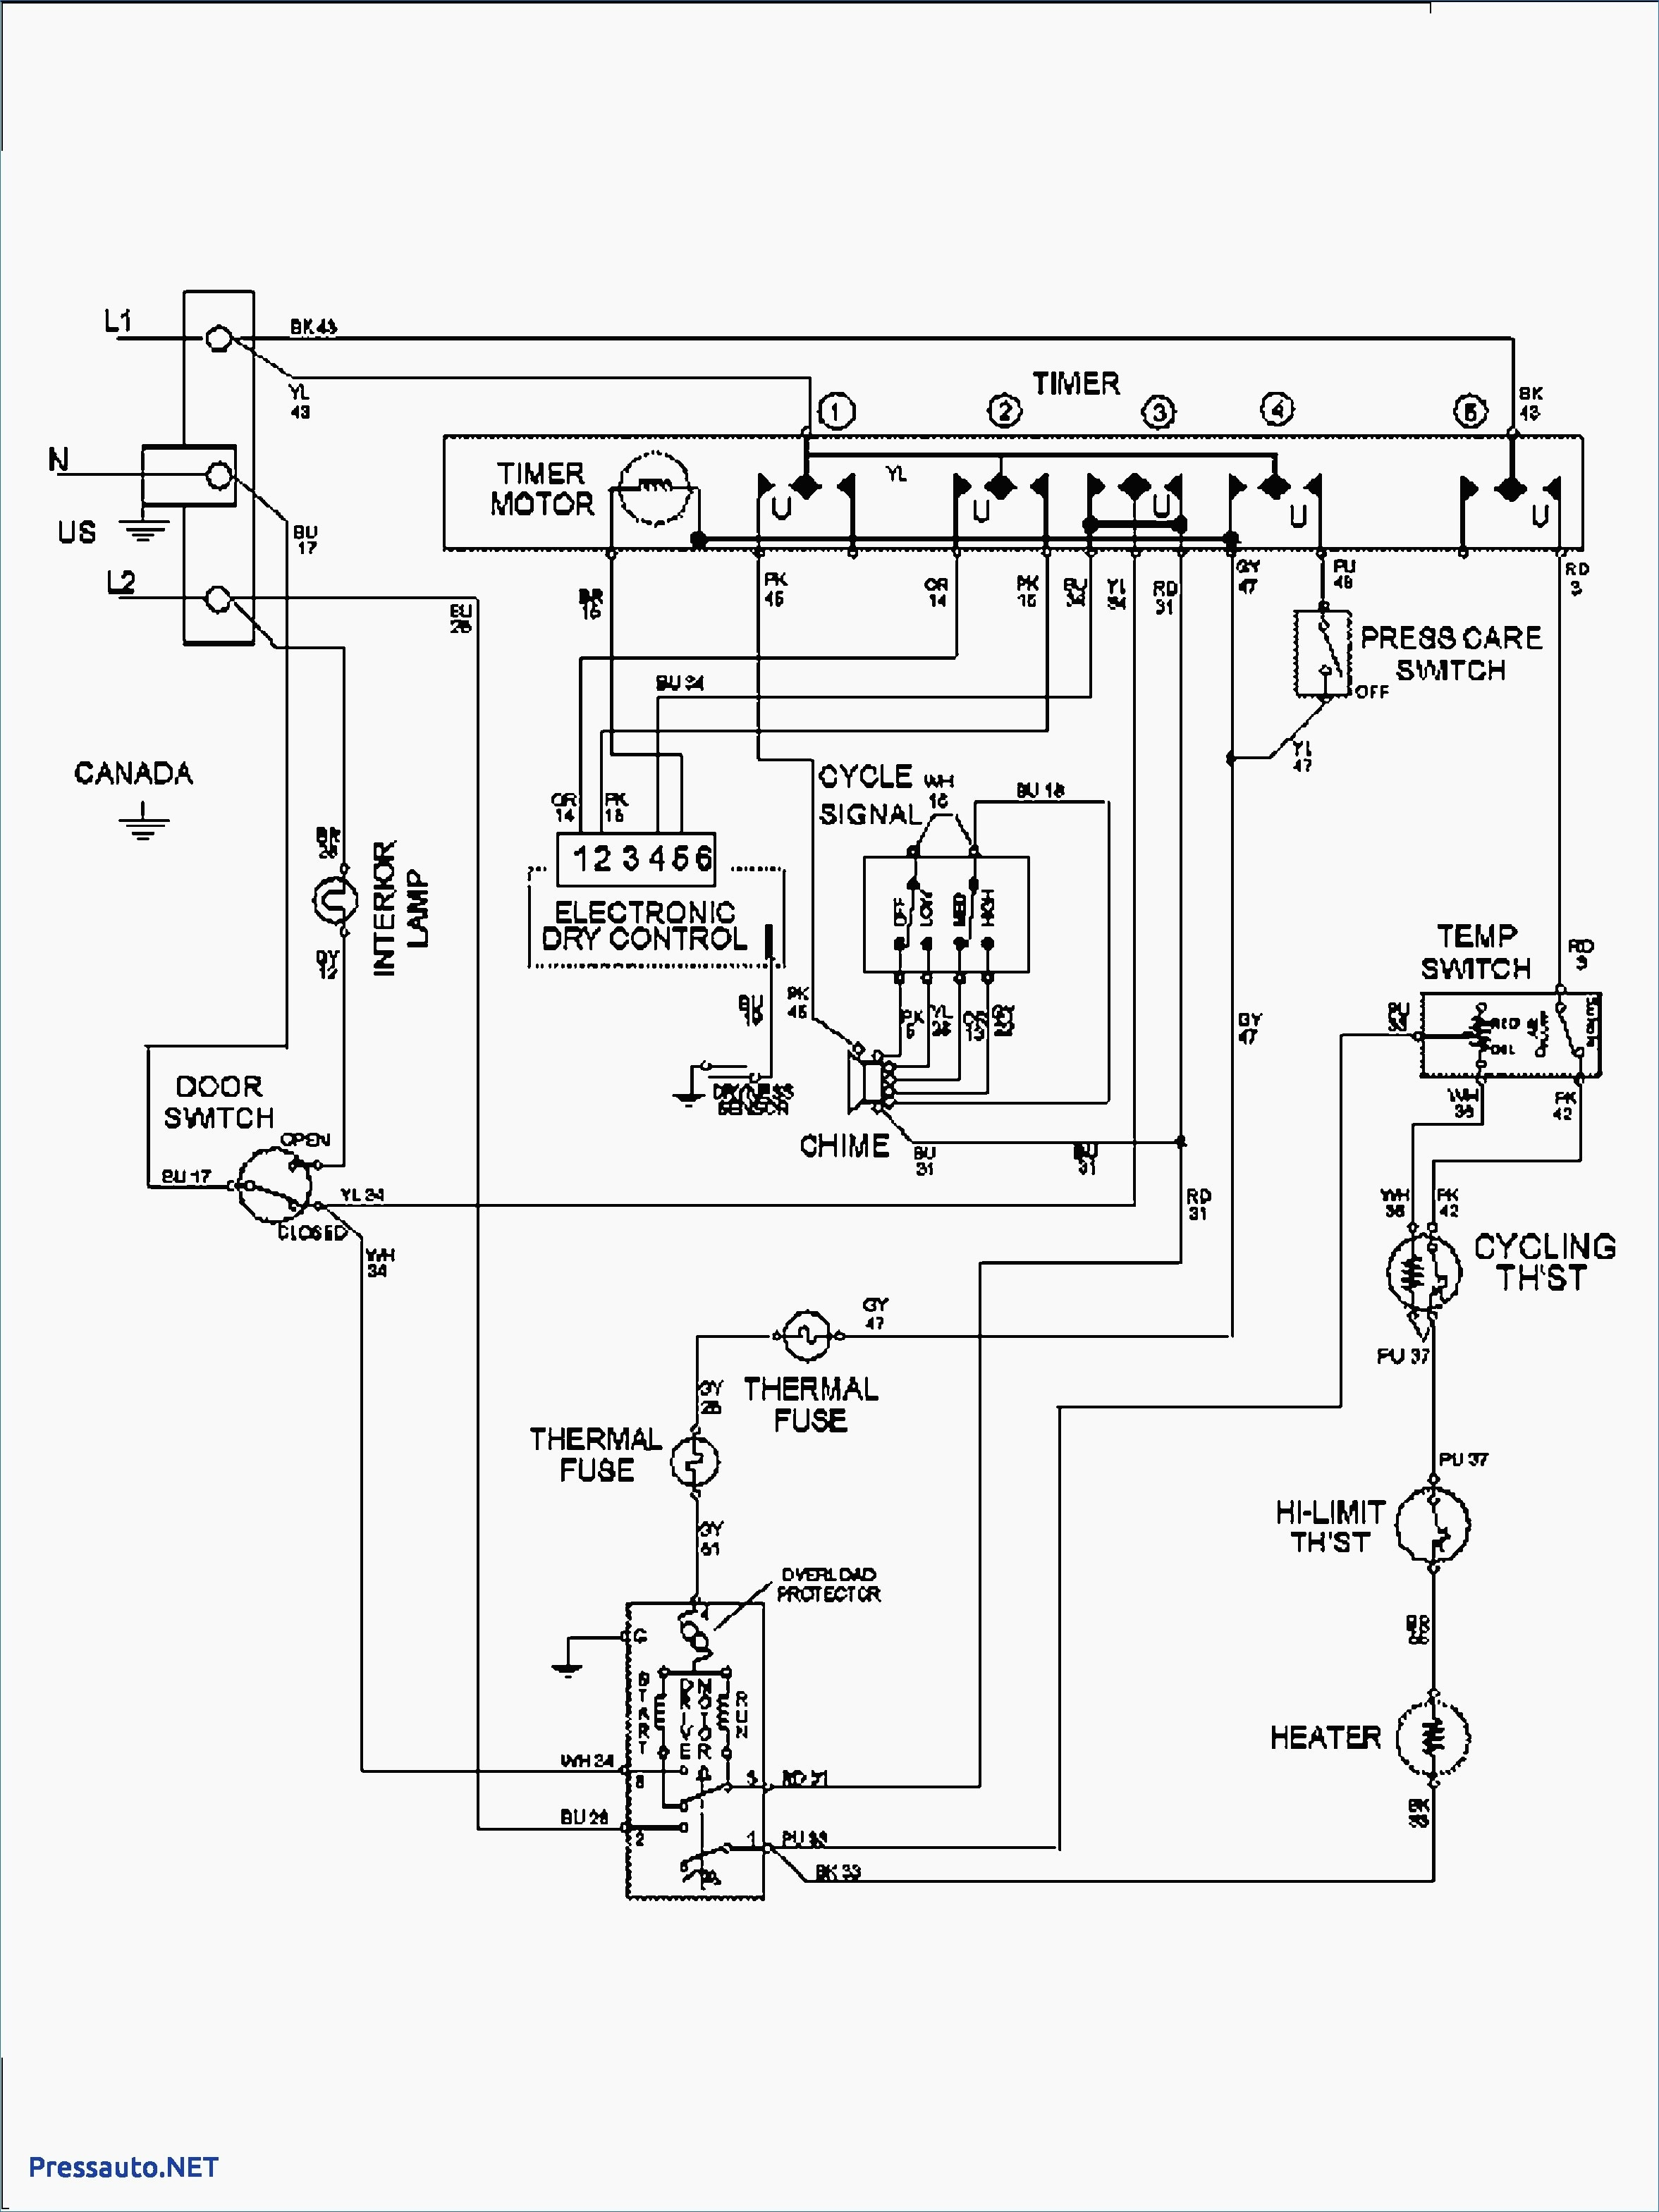 Whirlpool Lgr8648pg0 Wiring Schematic - 1992 Ford E150 Wiring Diagram -  fusebox.1997wir.jeanjaures37.fr | Whirlpool Wiring Schematic |  | Wiring Diagram Resource